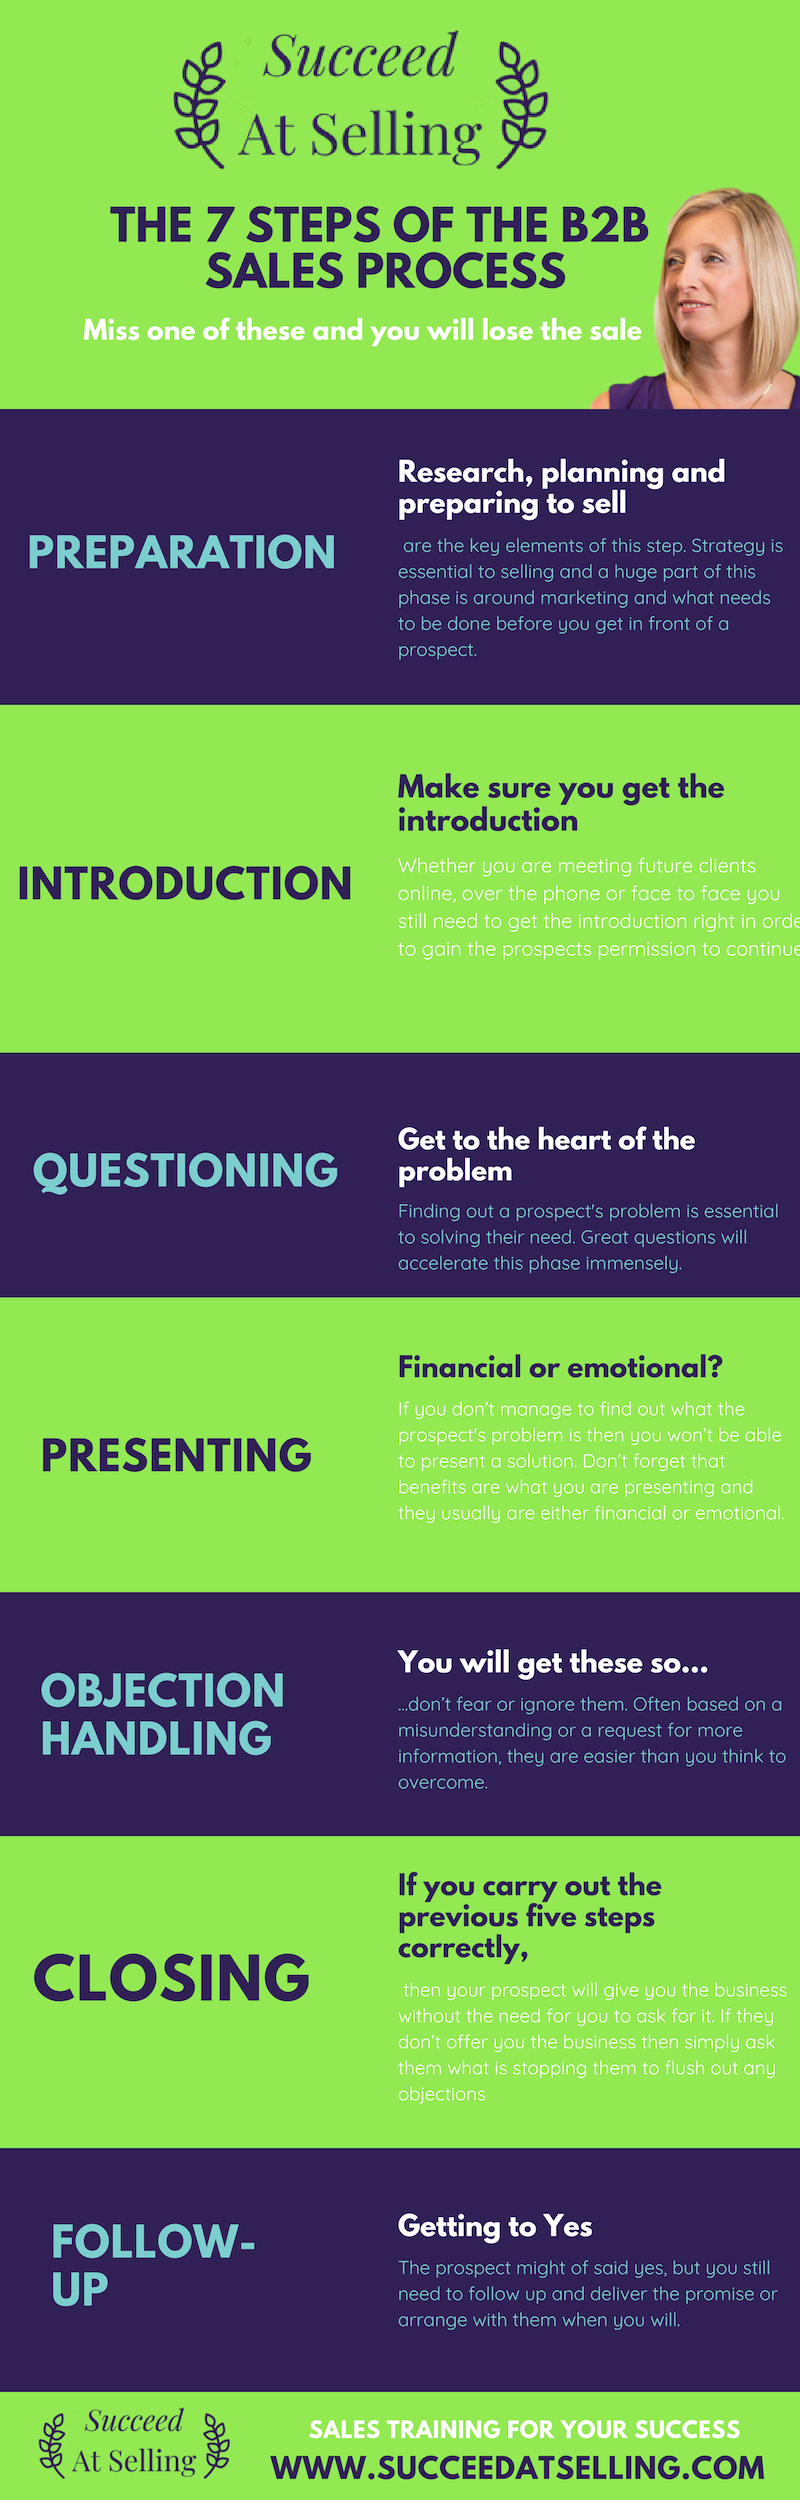 7 steps of the B2B sales process infographic